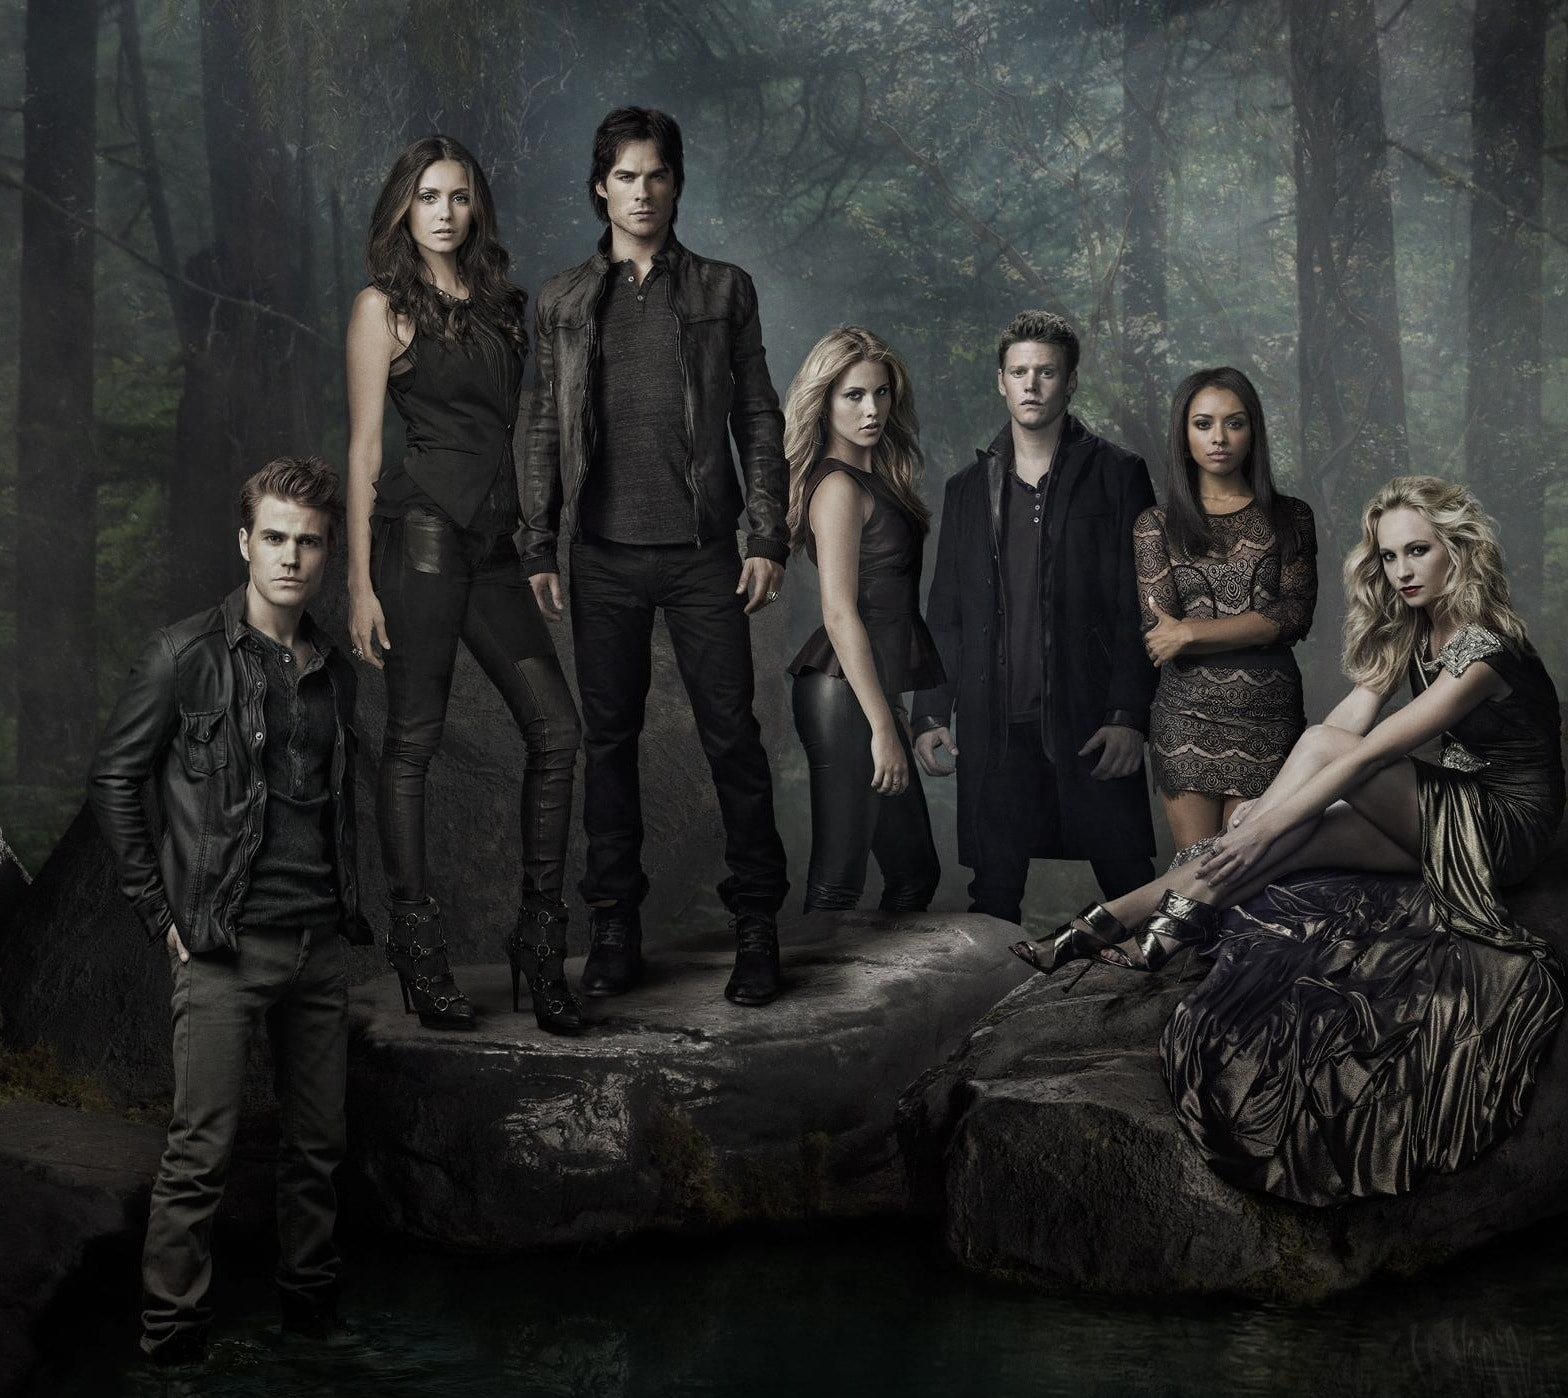 The Vampire Diaries Hd Wallpapers 7wallpapersnet